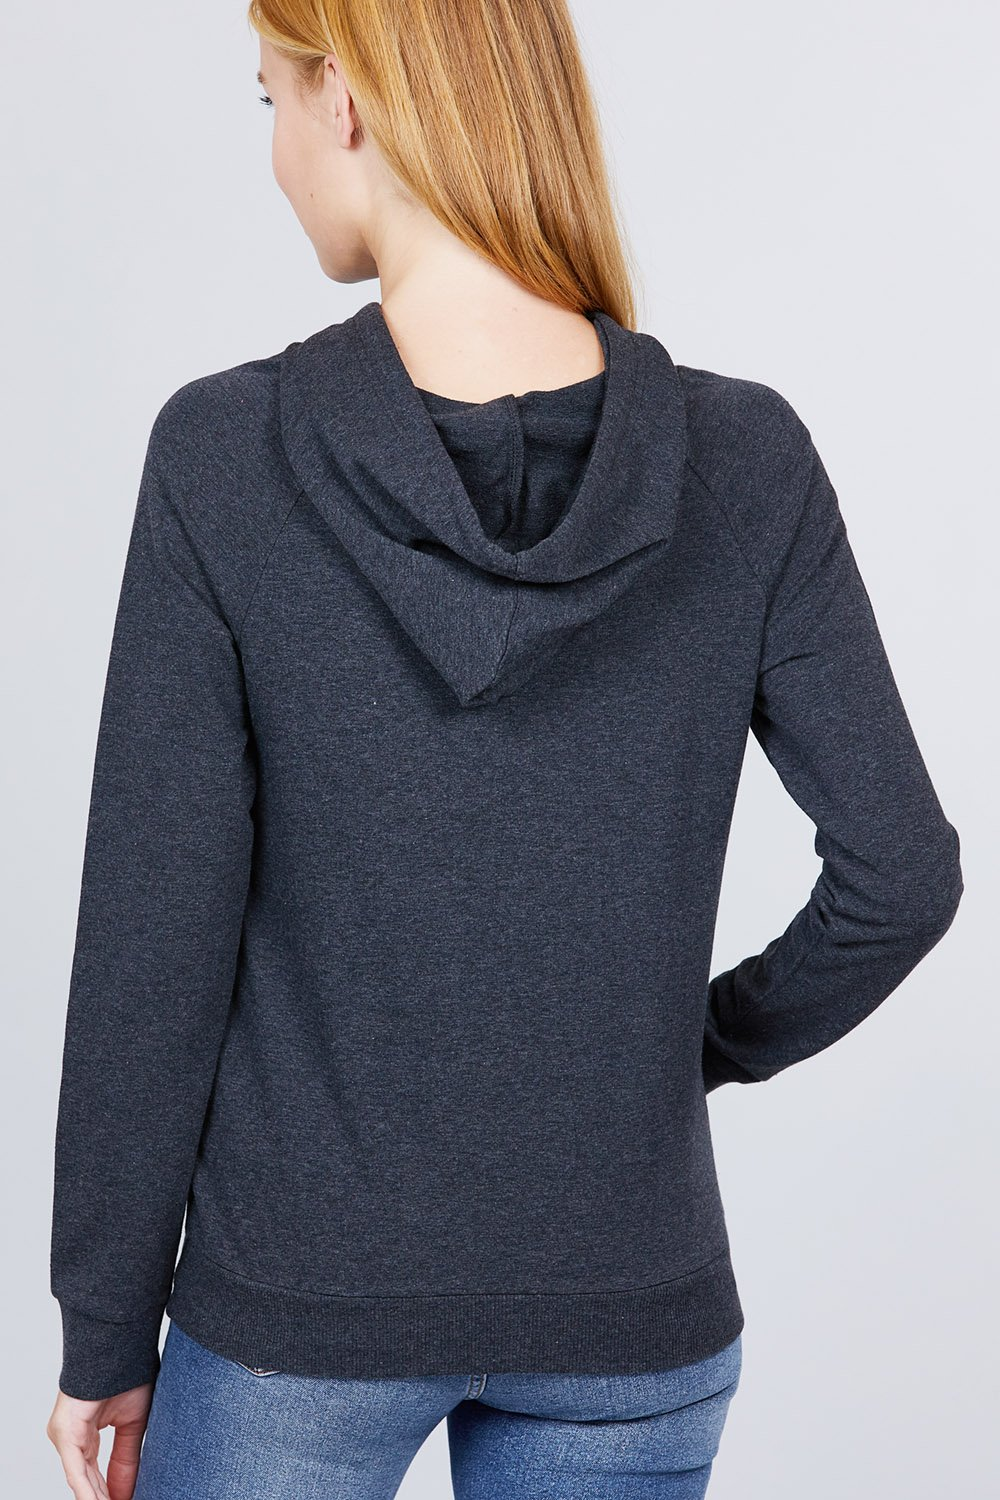 Sweat à capuche french terry pullover 53266o. Vetements Fashions Femme, FRANCE